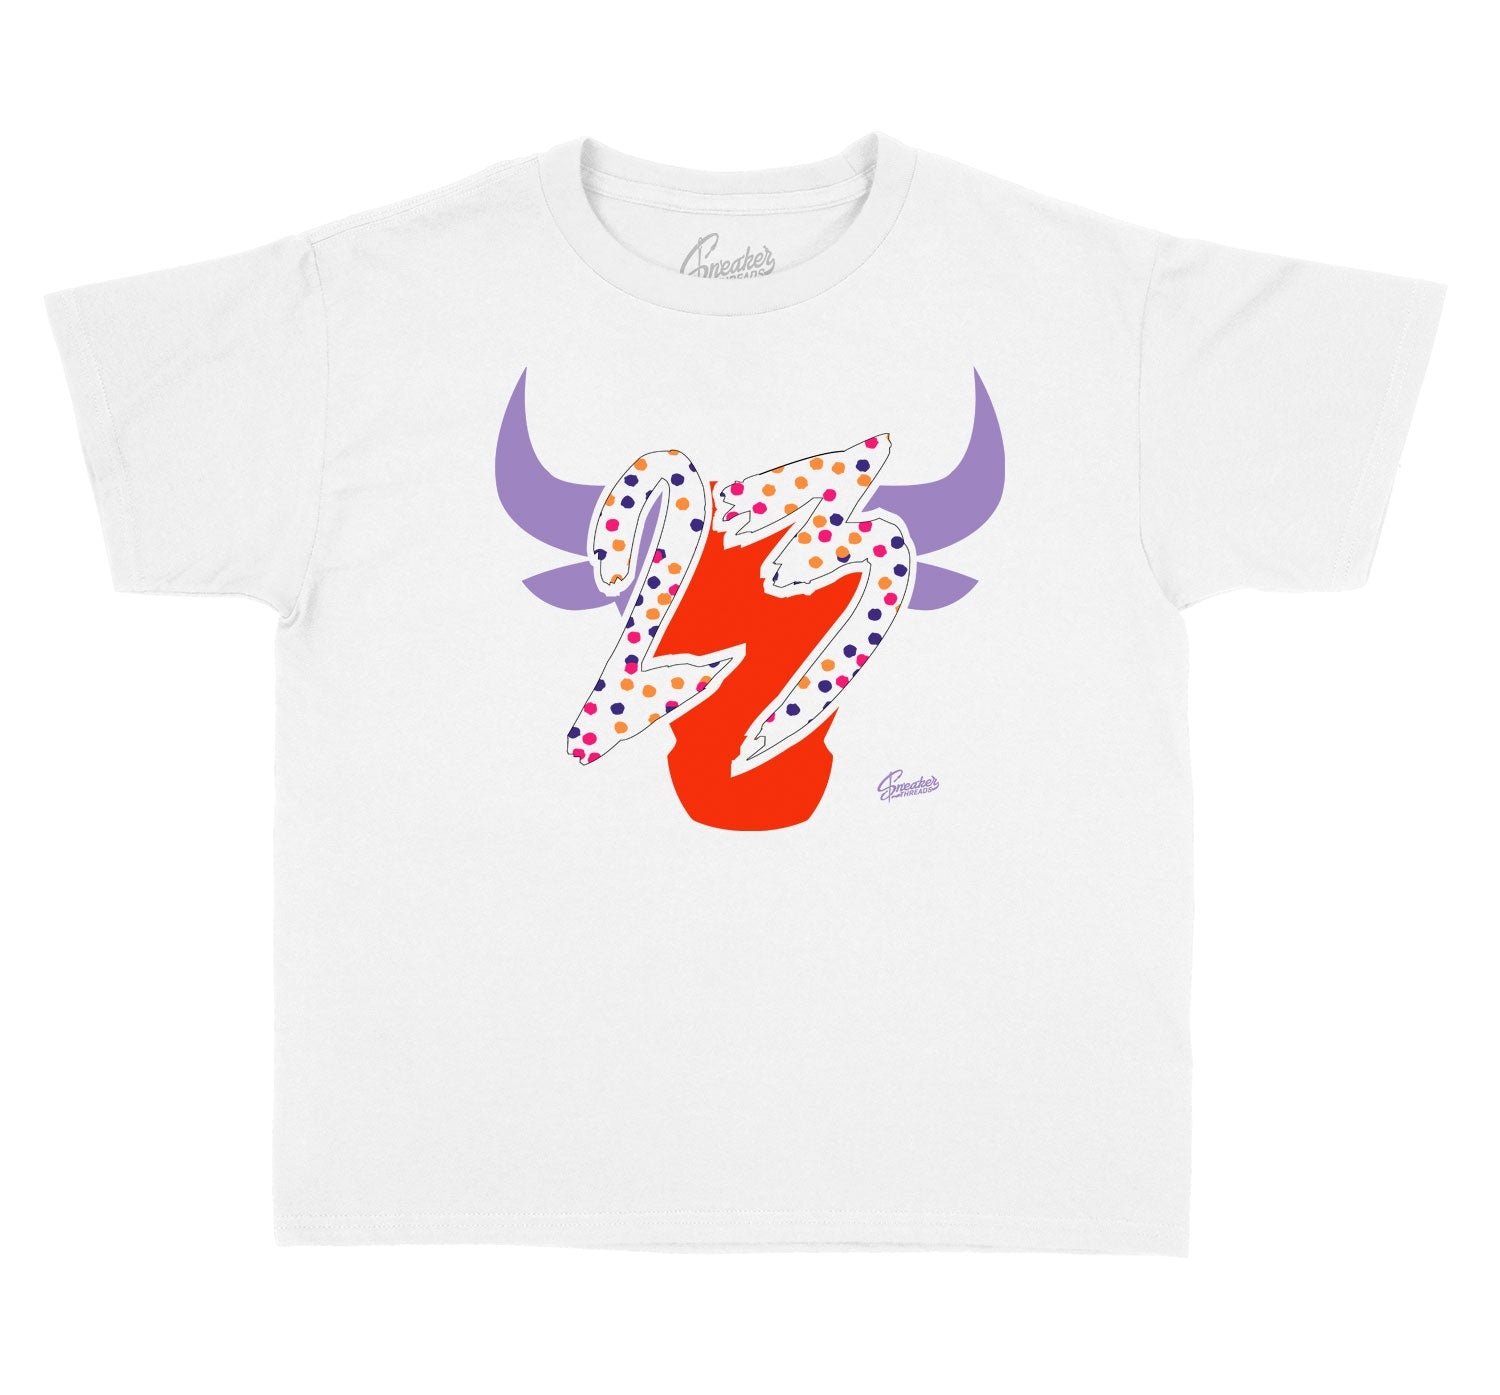 Easter Jordan 5 sneaker collection matches kids tee collection